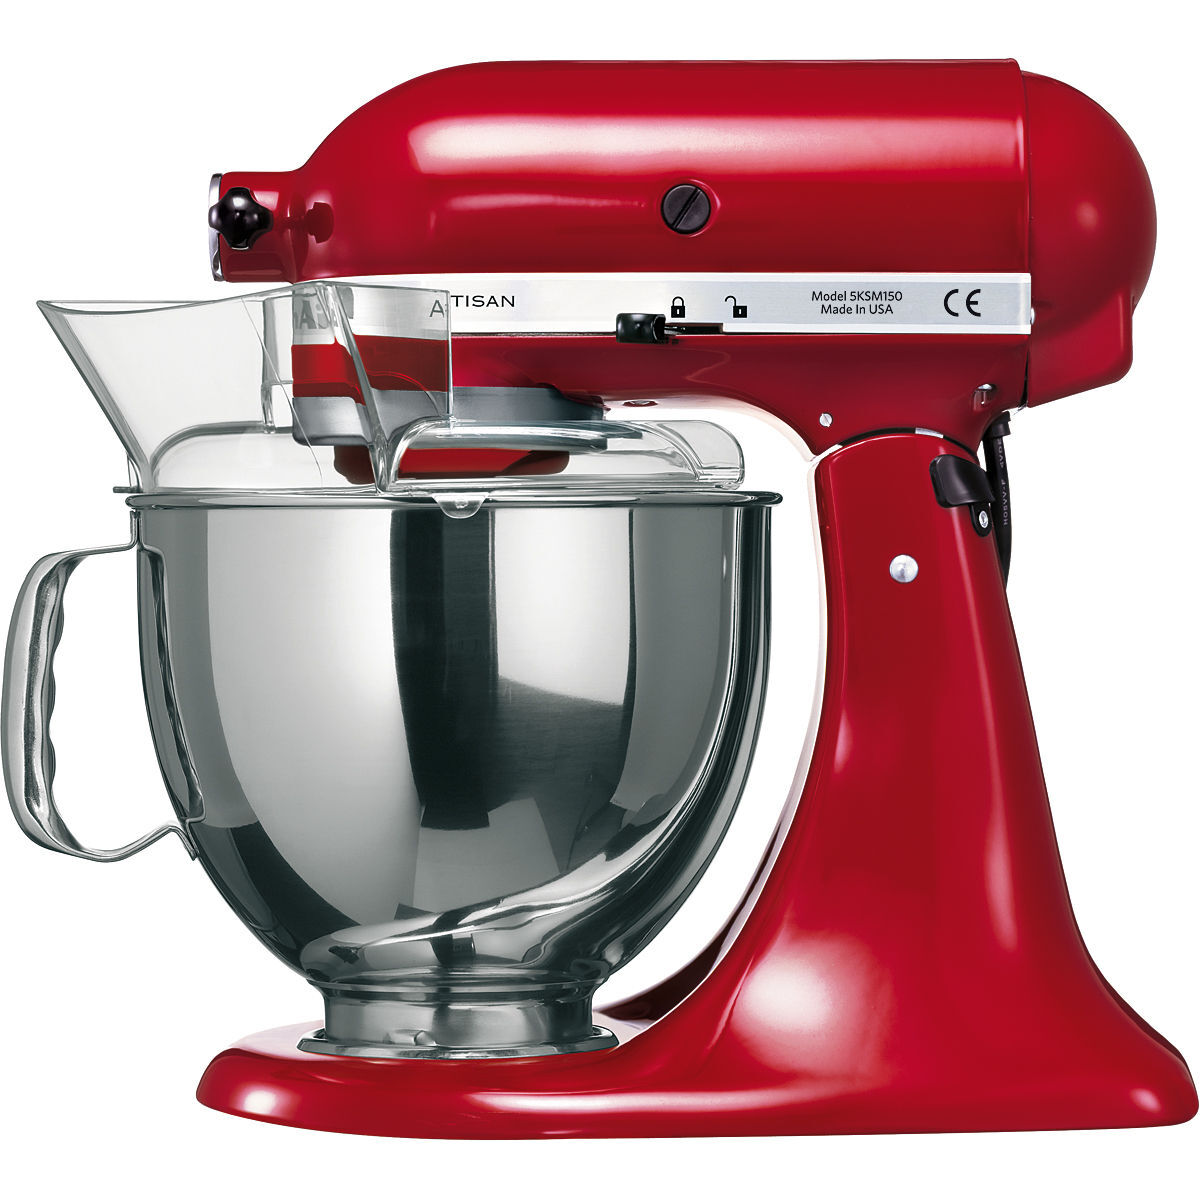 KitchenAid Küchenmaschine ARTISAN 5KSM150PS, empire rot | Karstadt ...